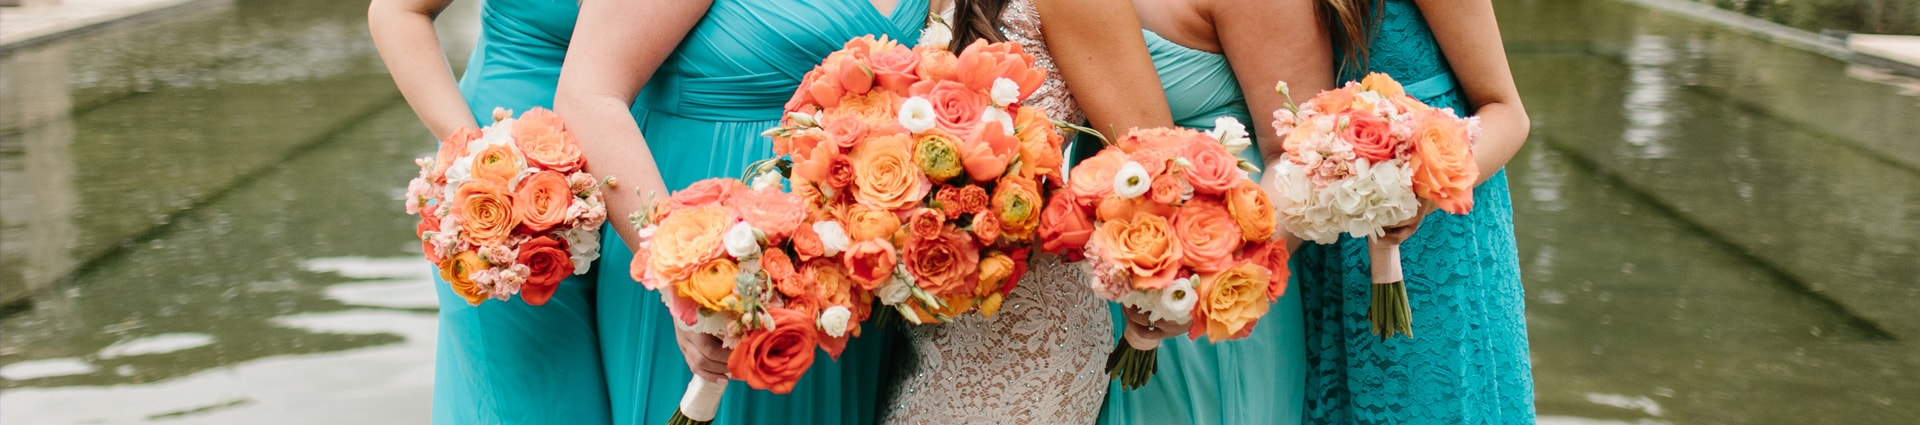 Dallas wedding flowers everything between will you and i do weve got it handled we cant wait to meet you and discuss every single detail of your most important day izmirmasajfo